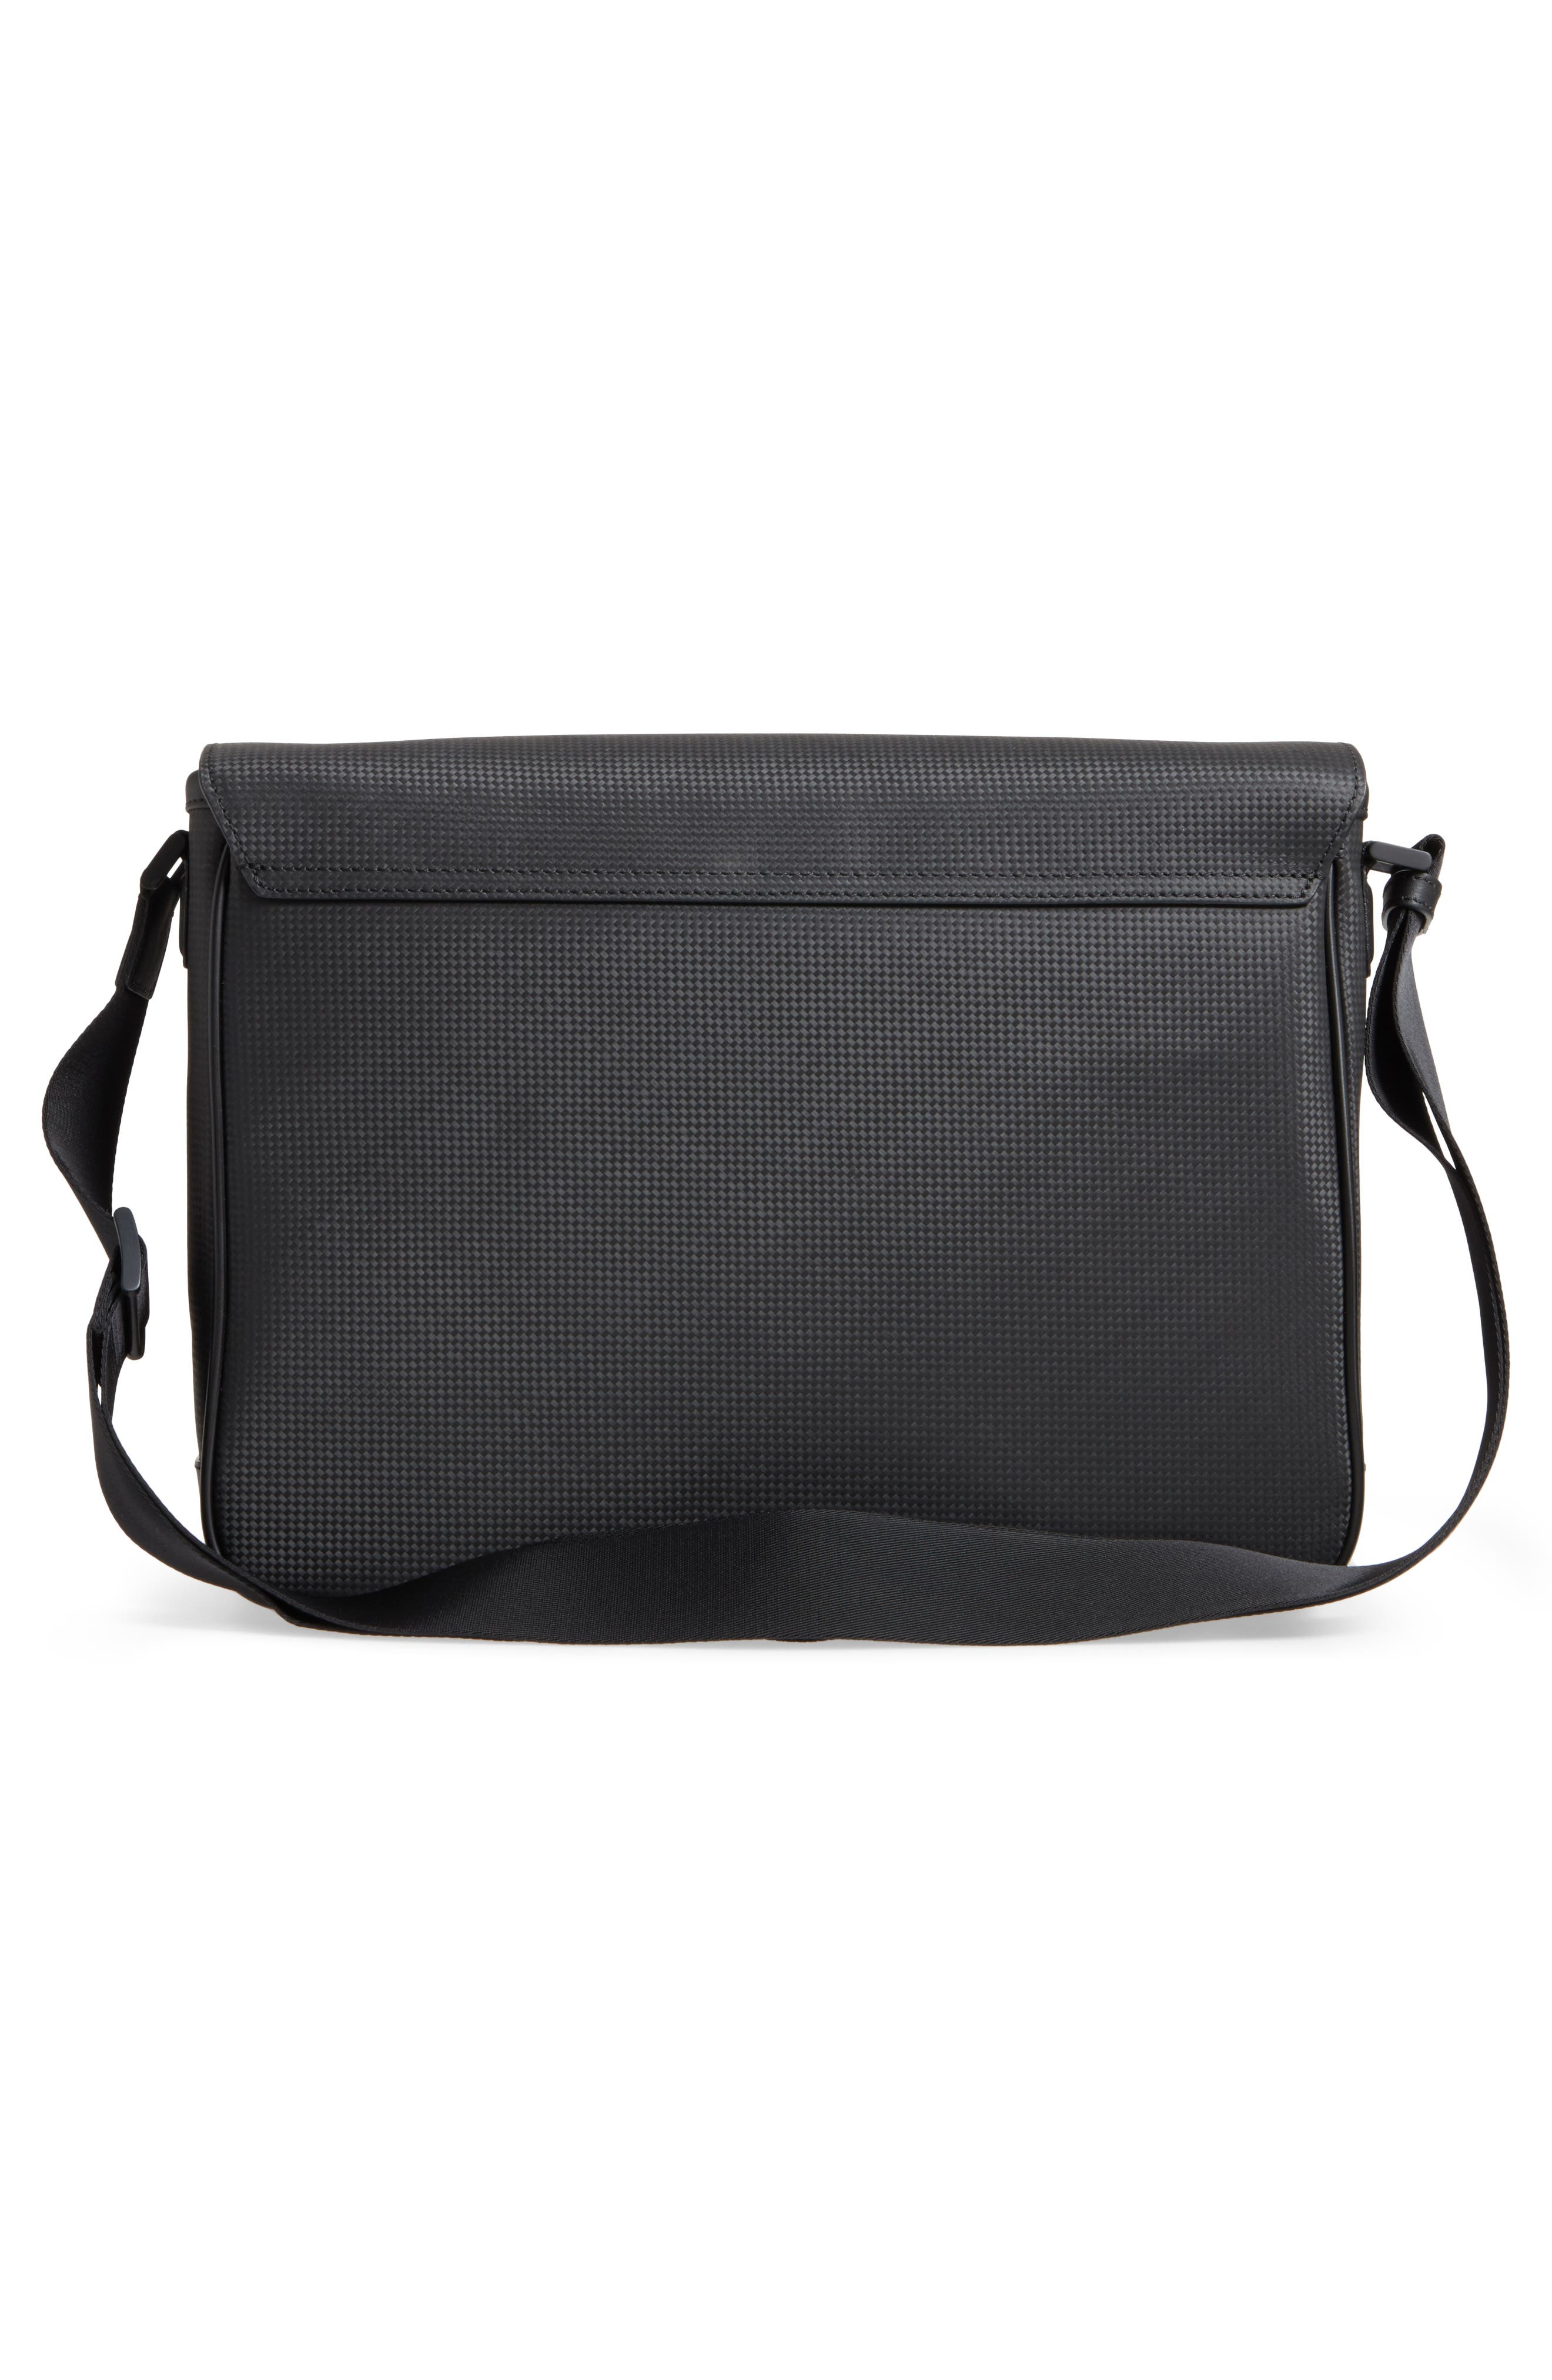 Extreme Leather Messenger Bag,                             Alternate thumbnail 3, color,                             001